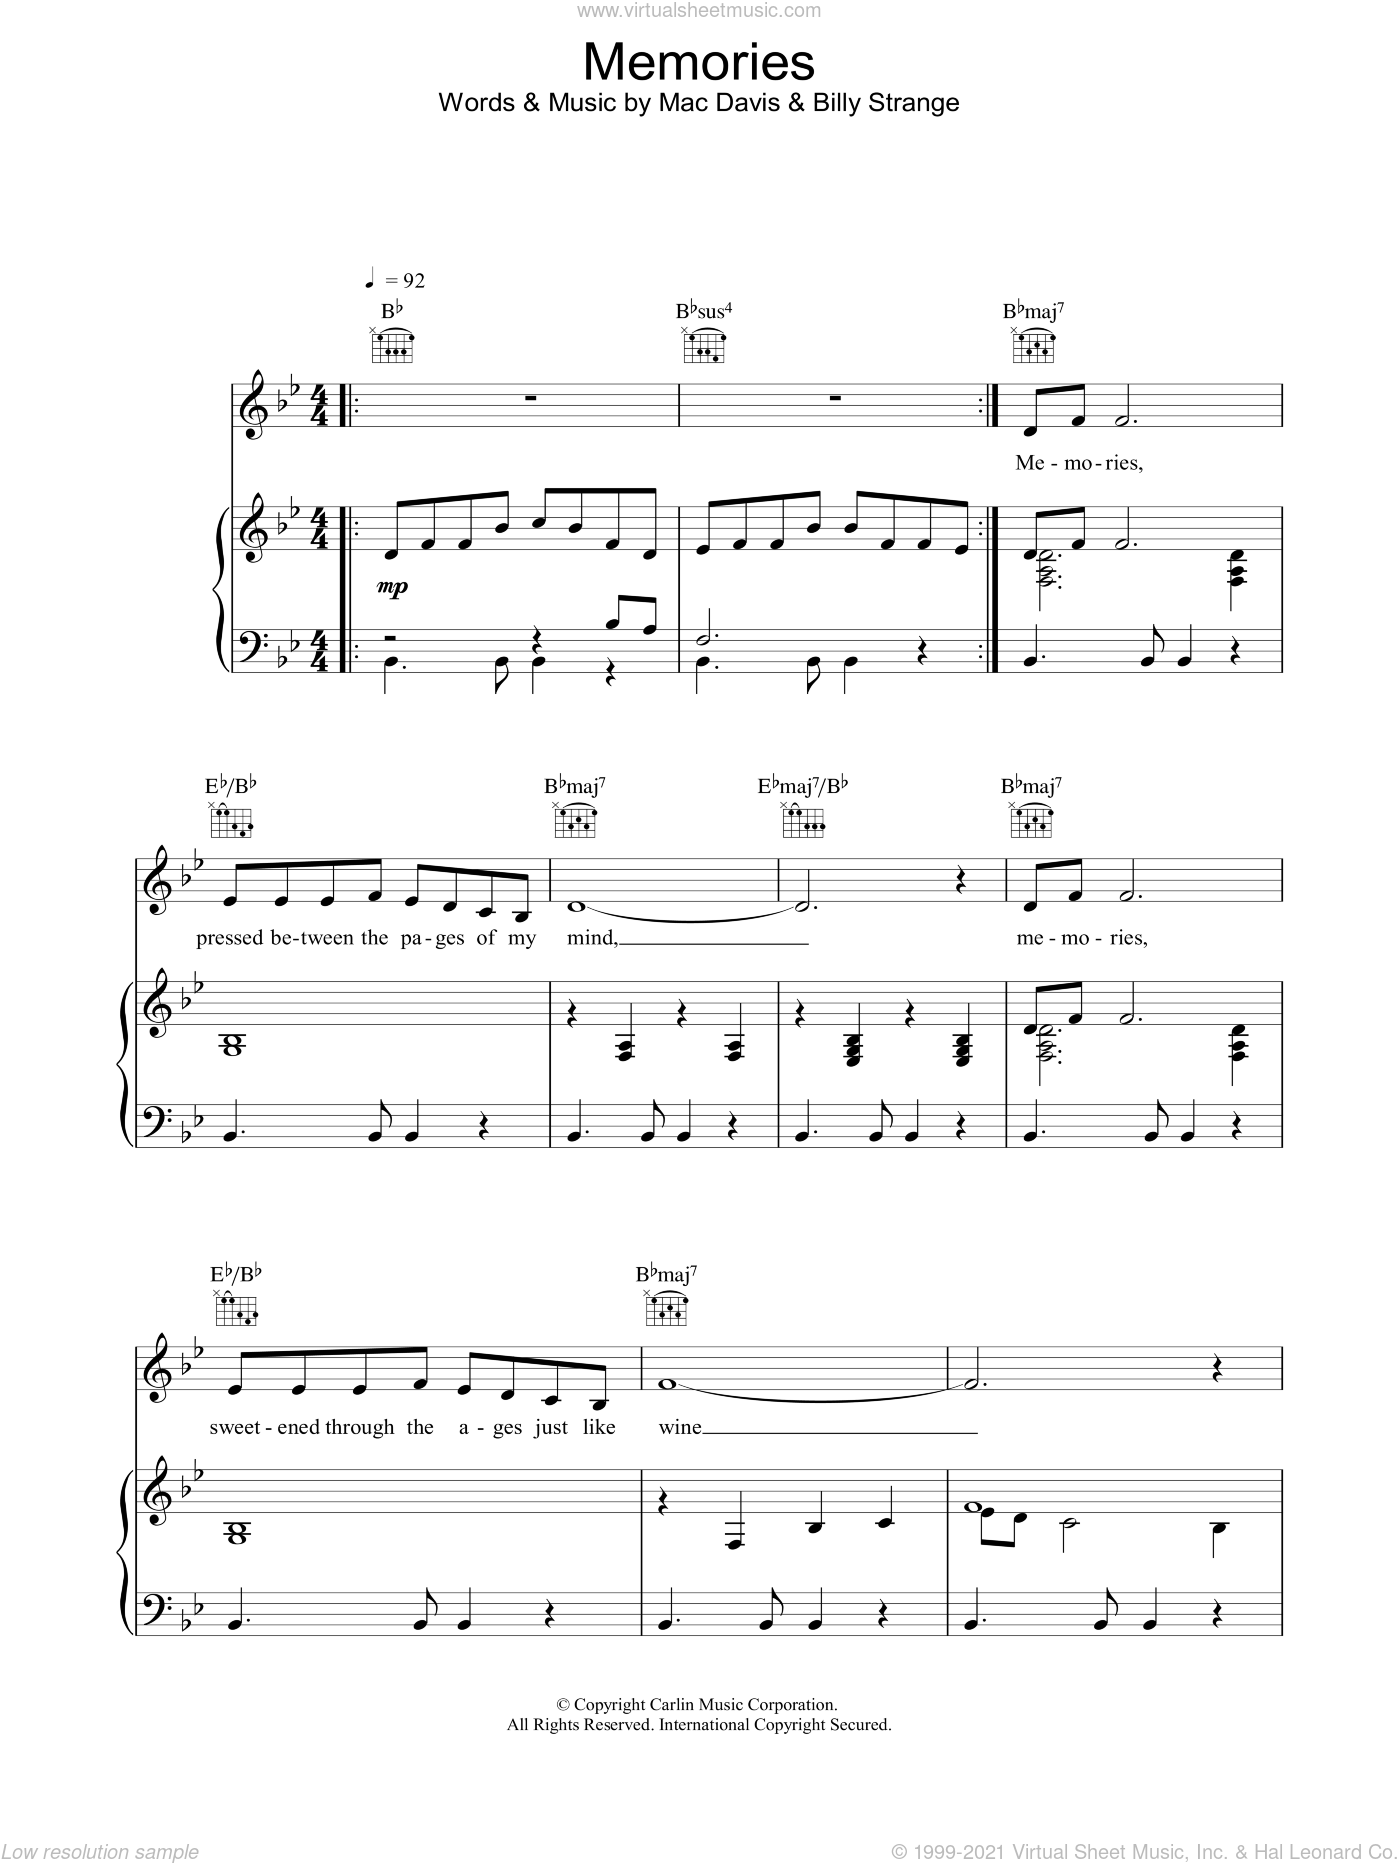 Presley - Memories sheet music for voice, piano or guitar v2